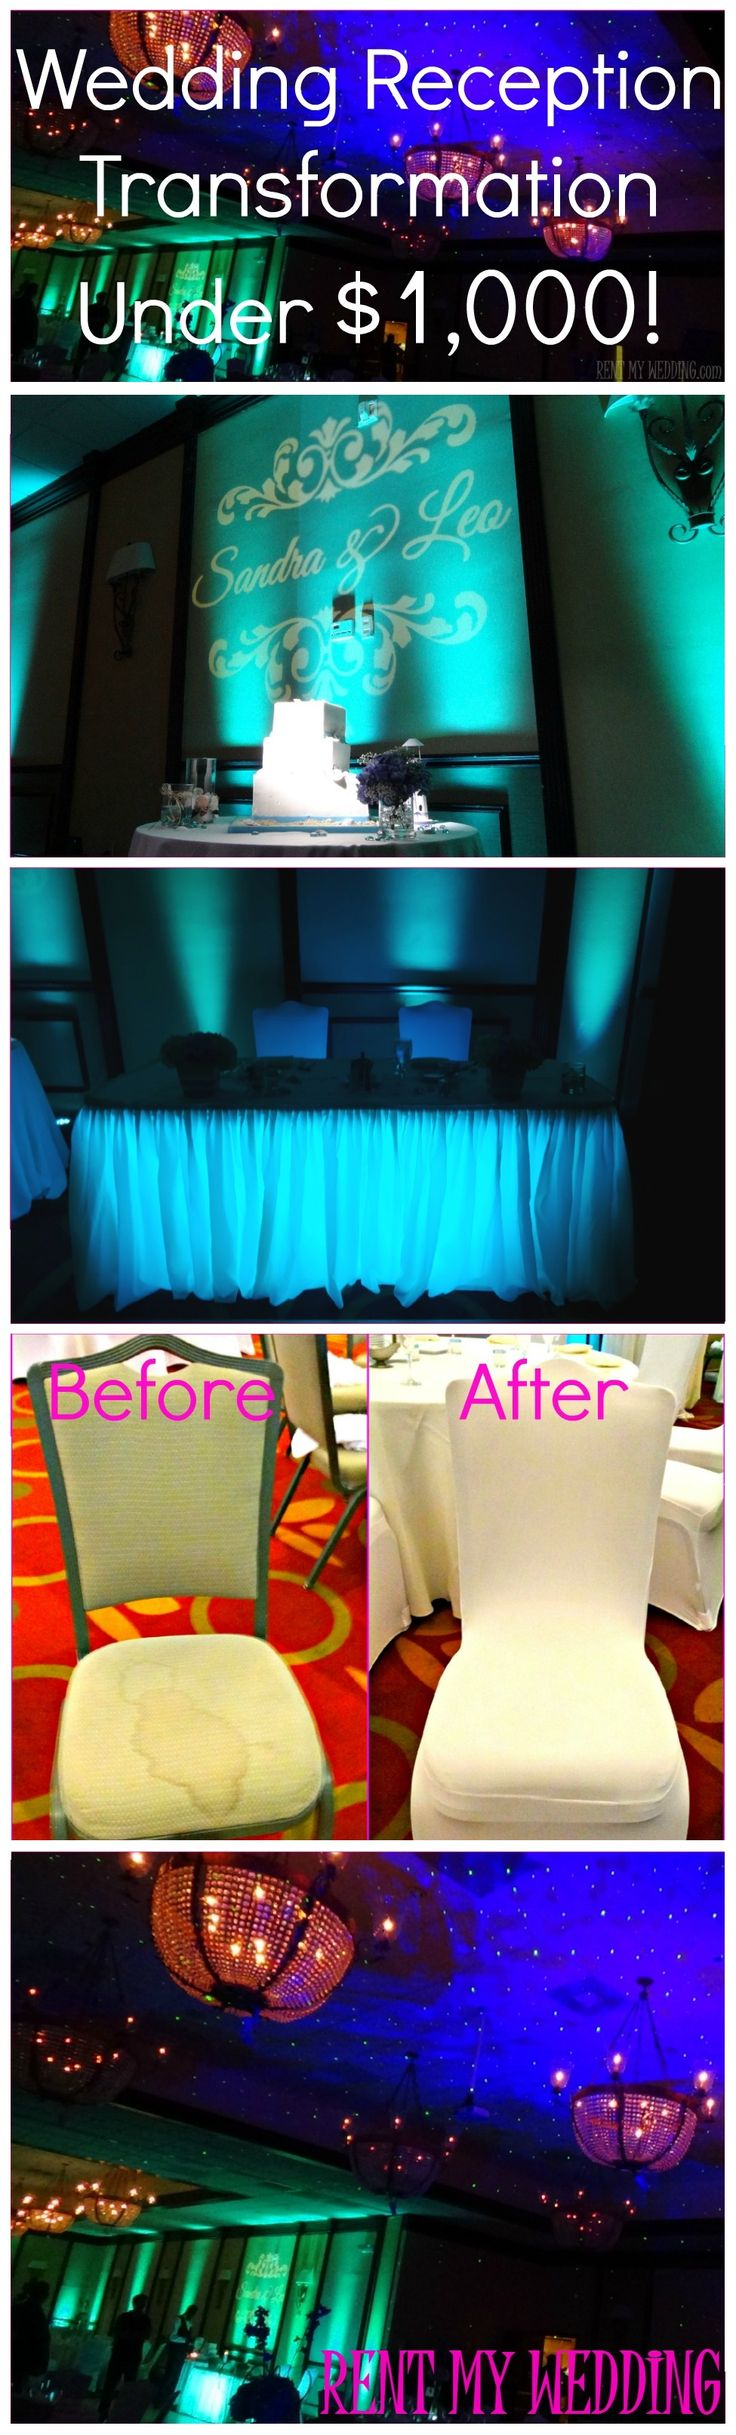 Wedding Reception Transformation Under $1,000! #RentMyWedding #diy #uplighting…